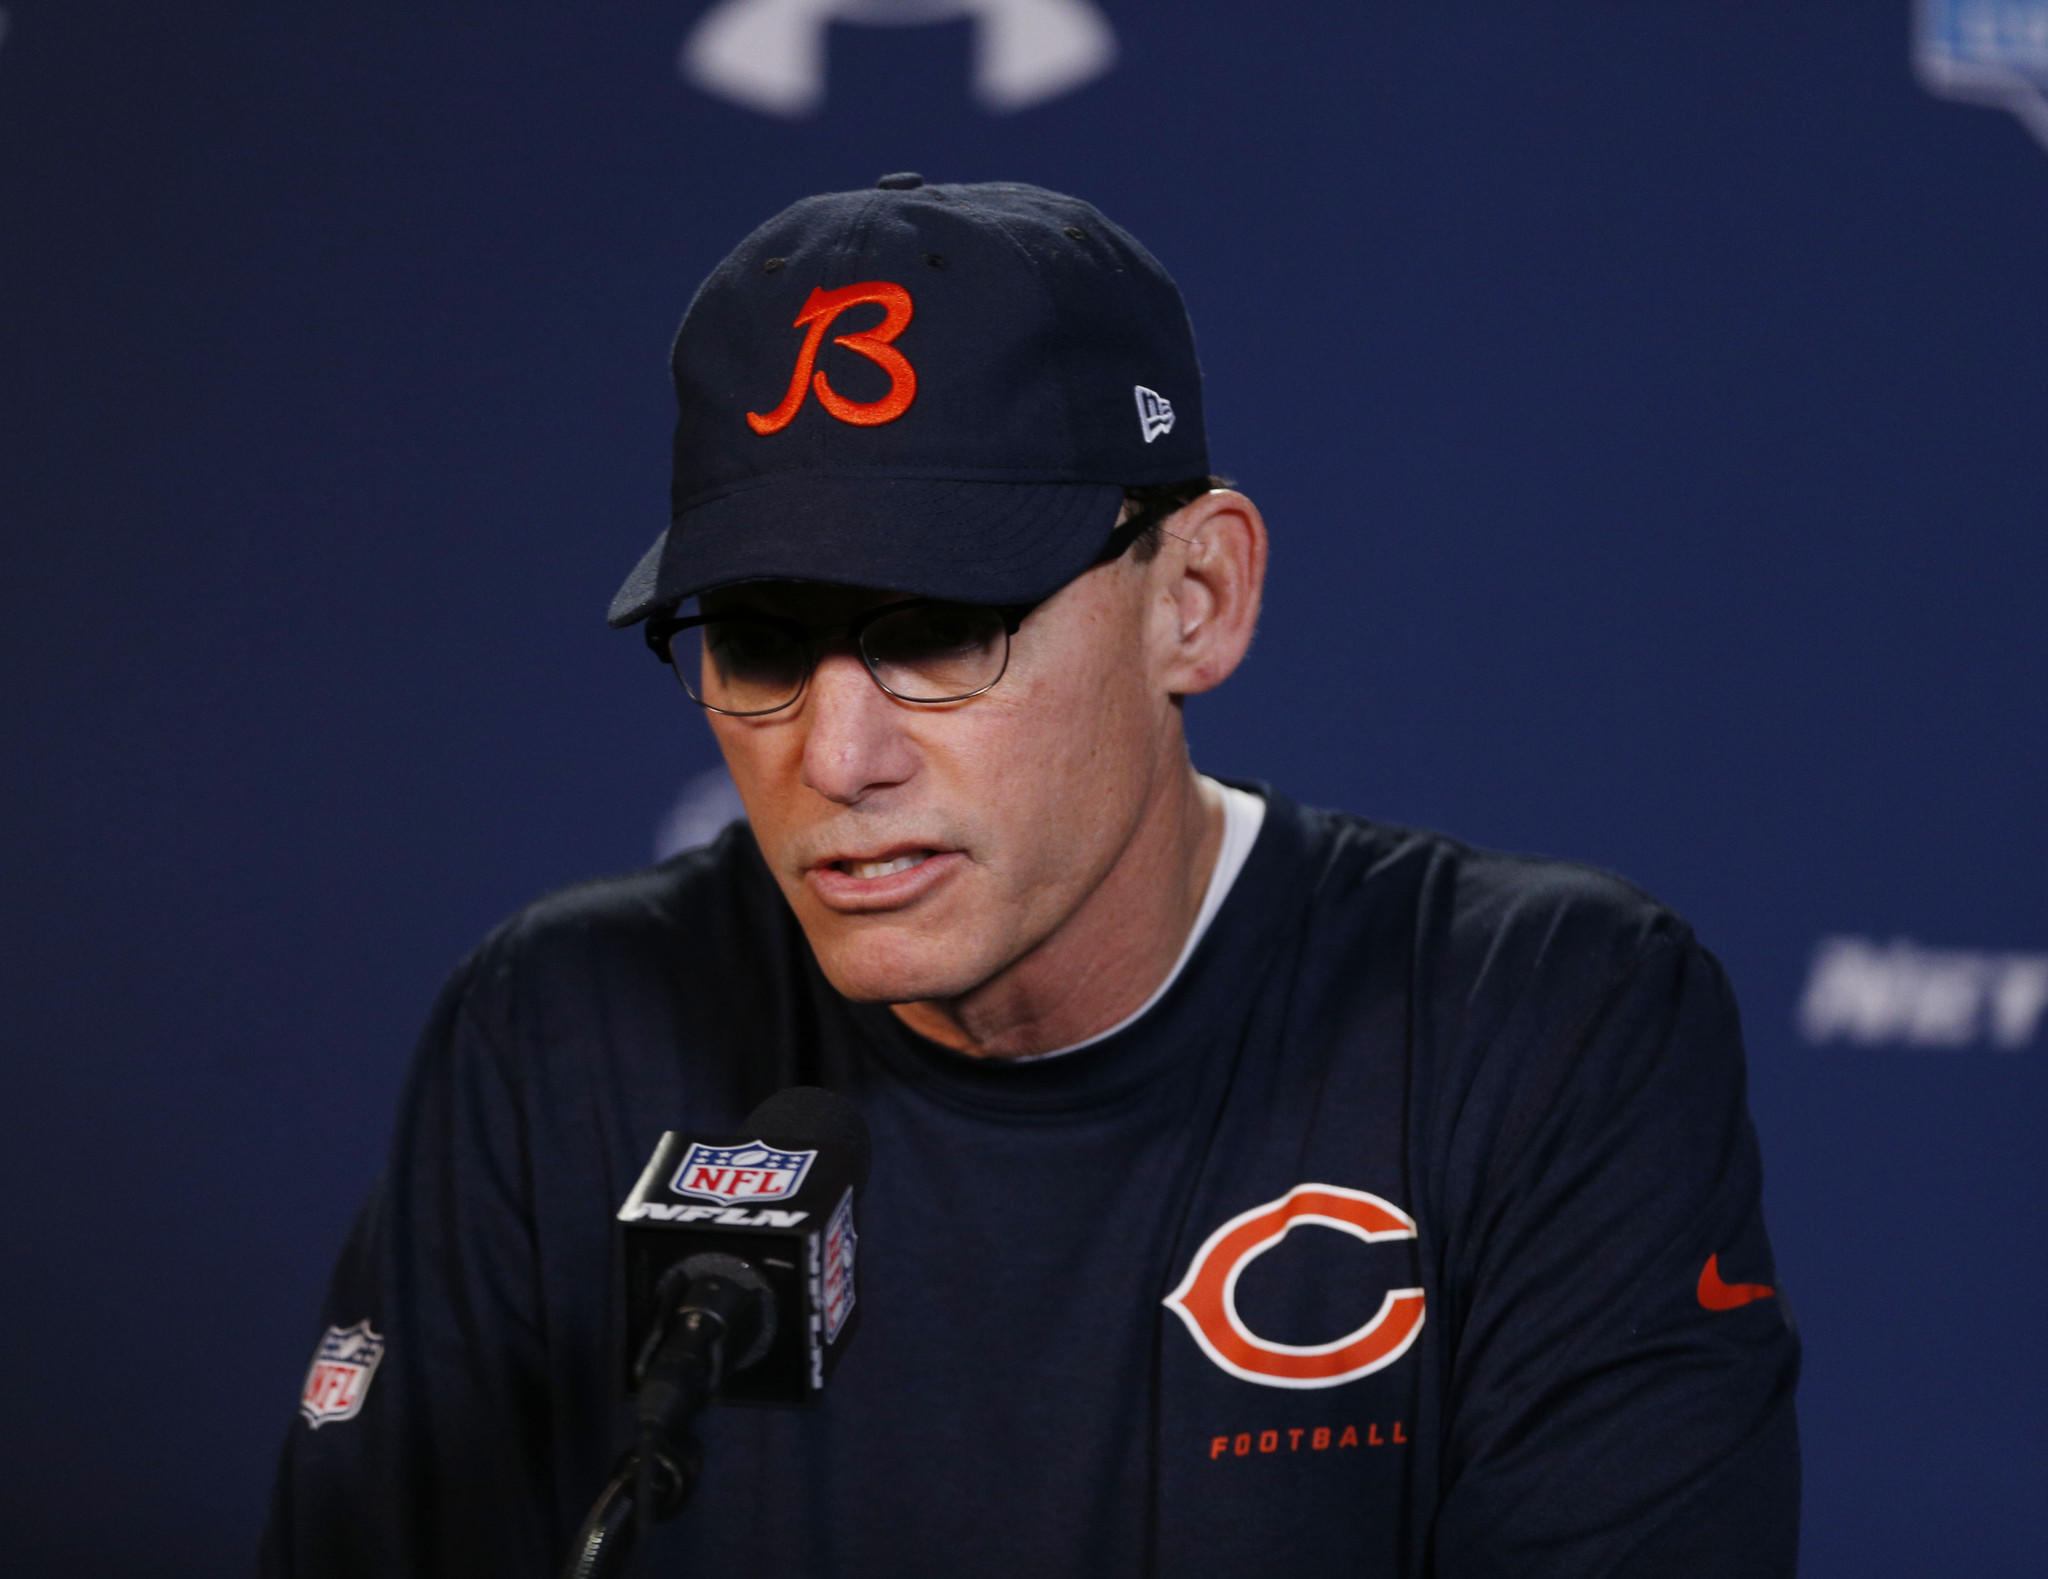 Chicago Bears coach Marc Trestman speaks during a press conference during the 2014 NFL Combine at Lucas Oil Stadium.